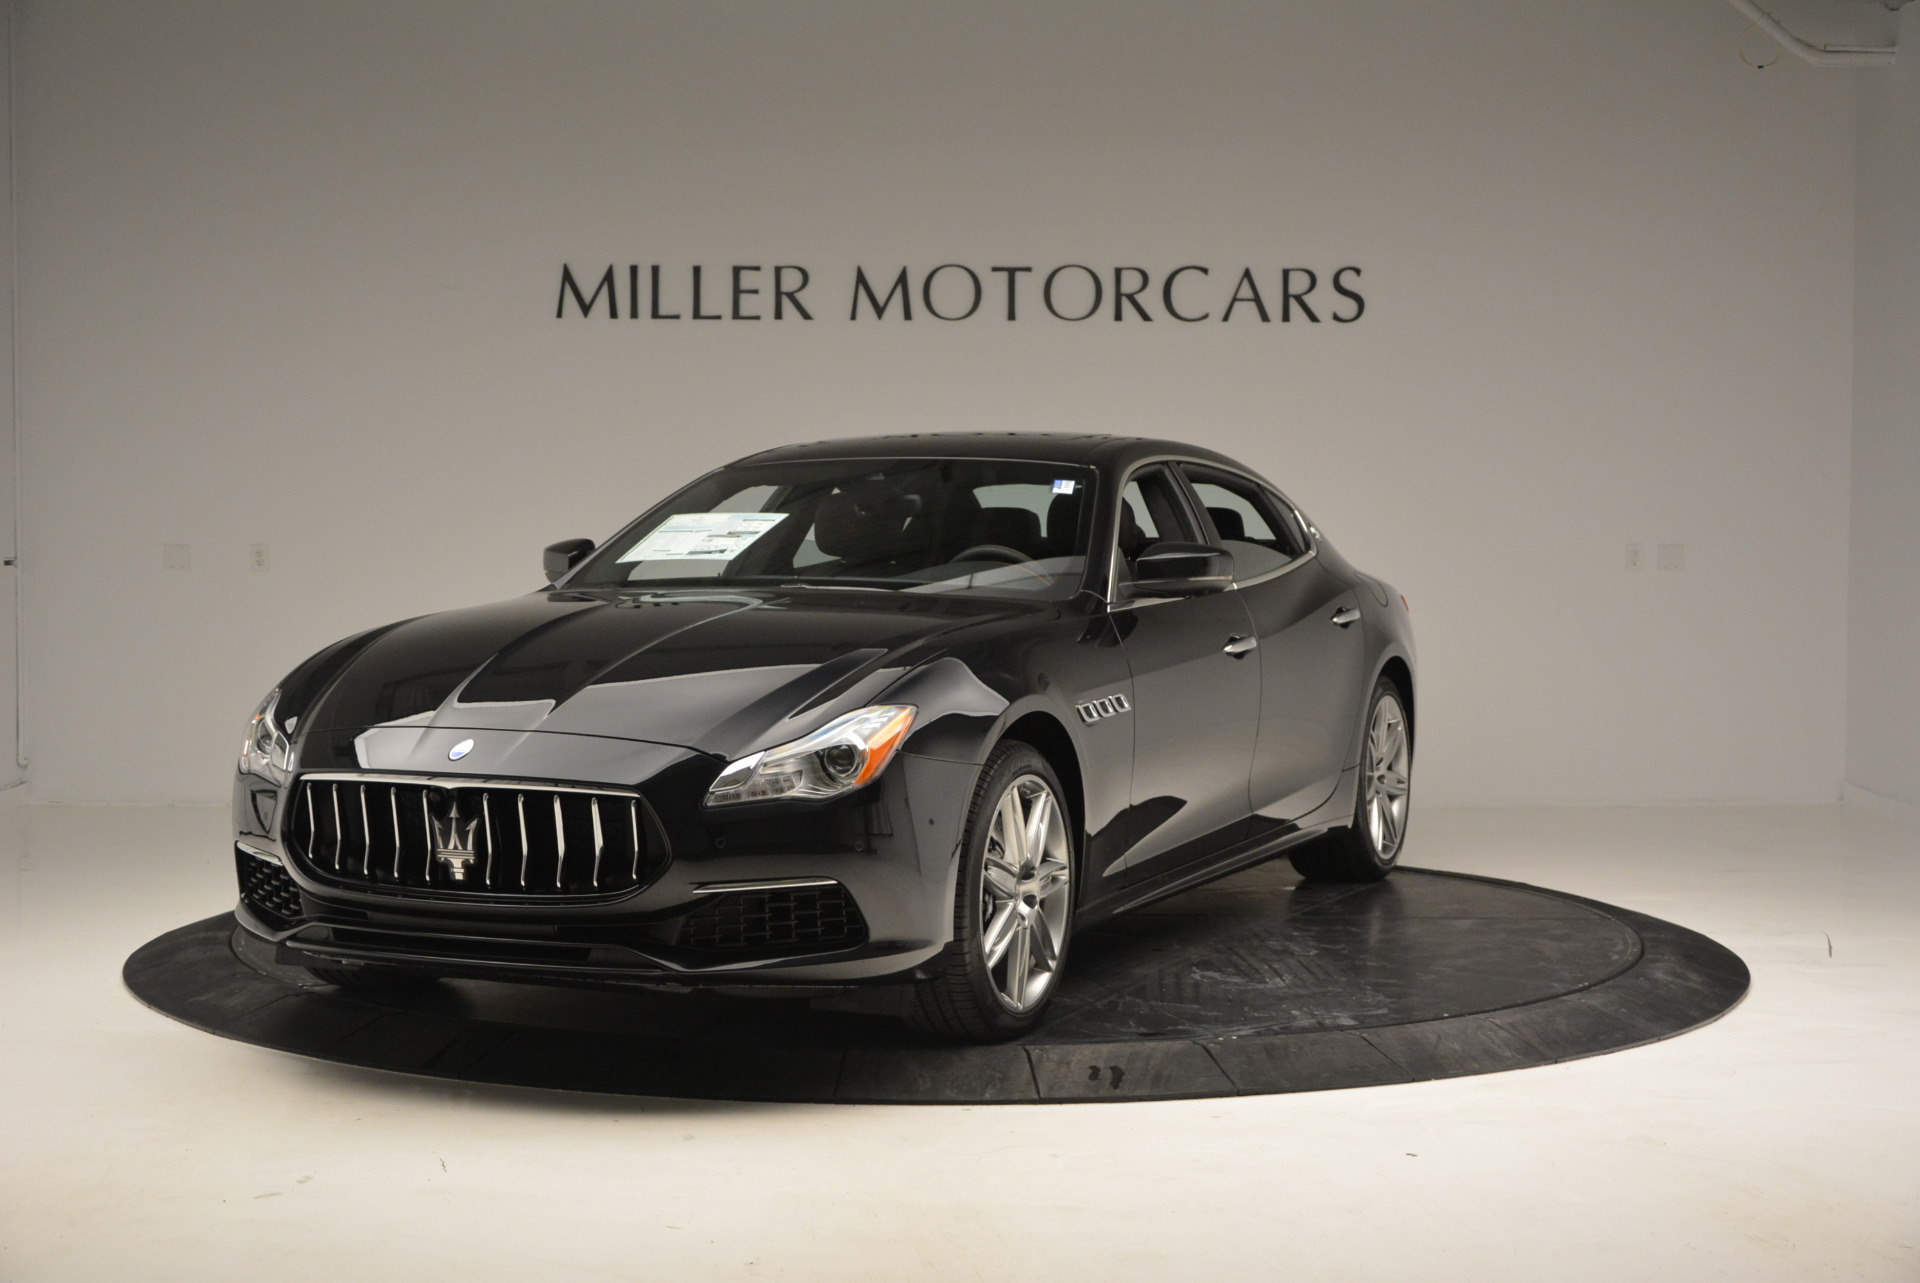 New 2017 Maserati Quattroporte S Q4 GranLusso For Sale In Westport, CT 793_main